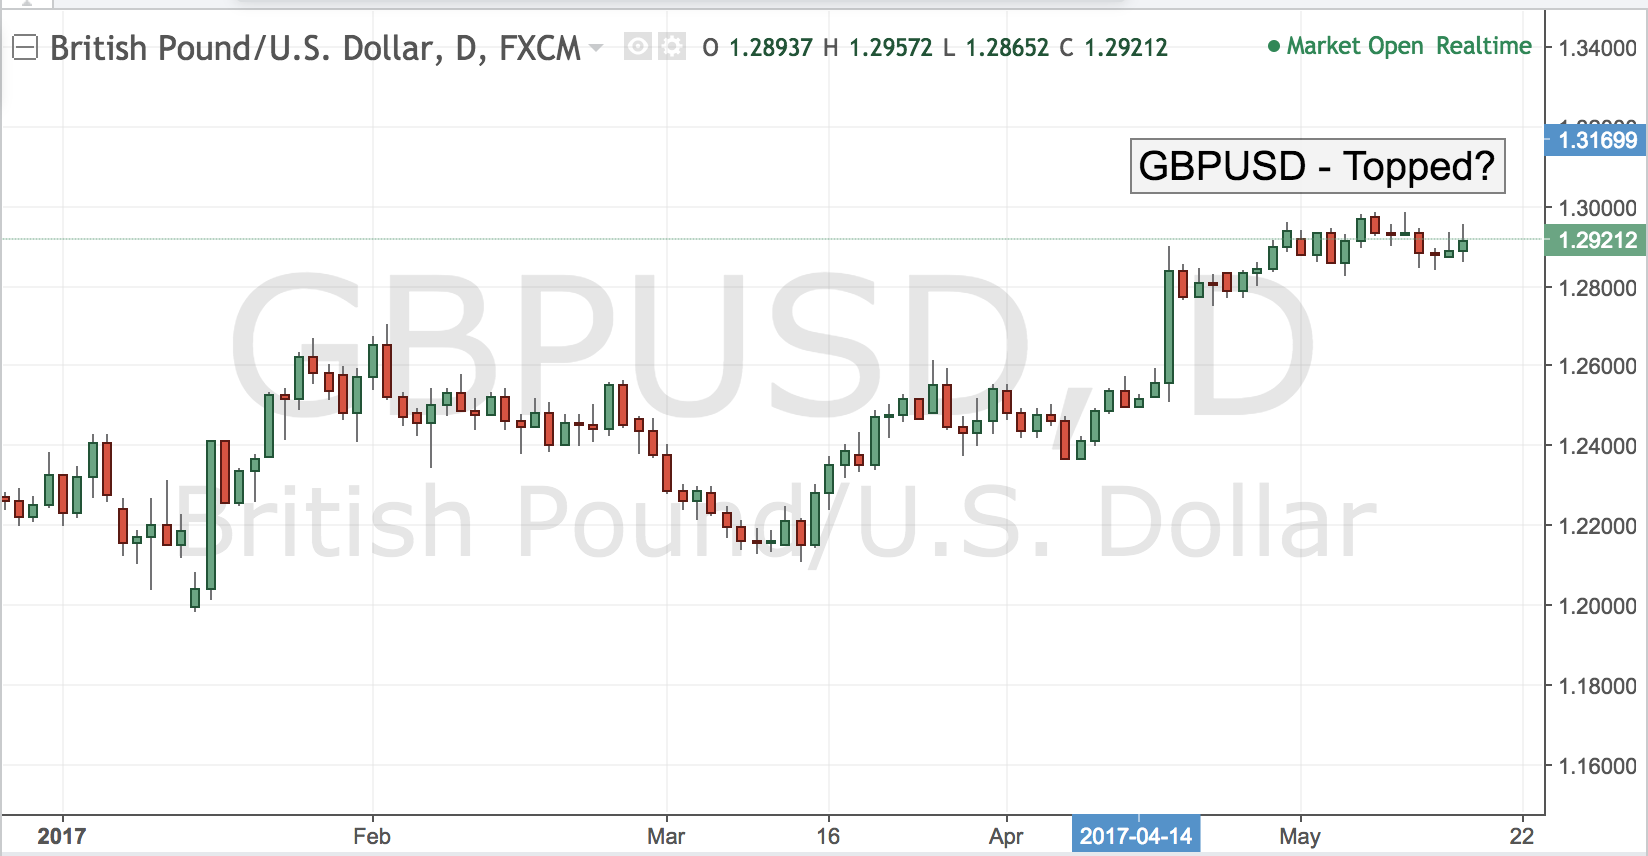 GBPUSD – Topped?